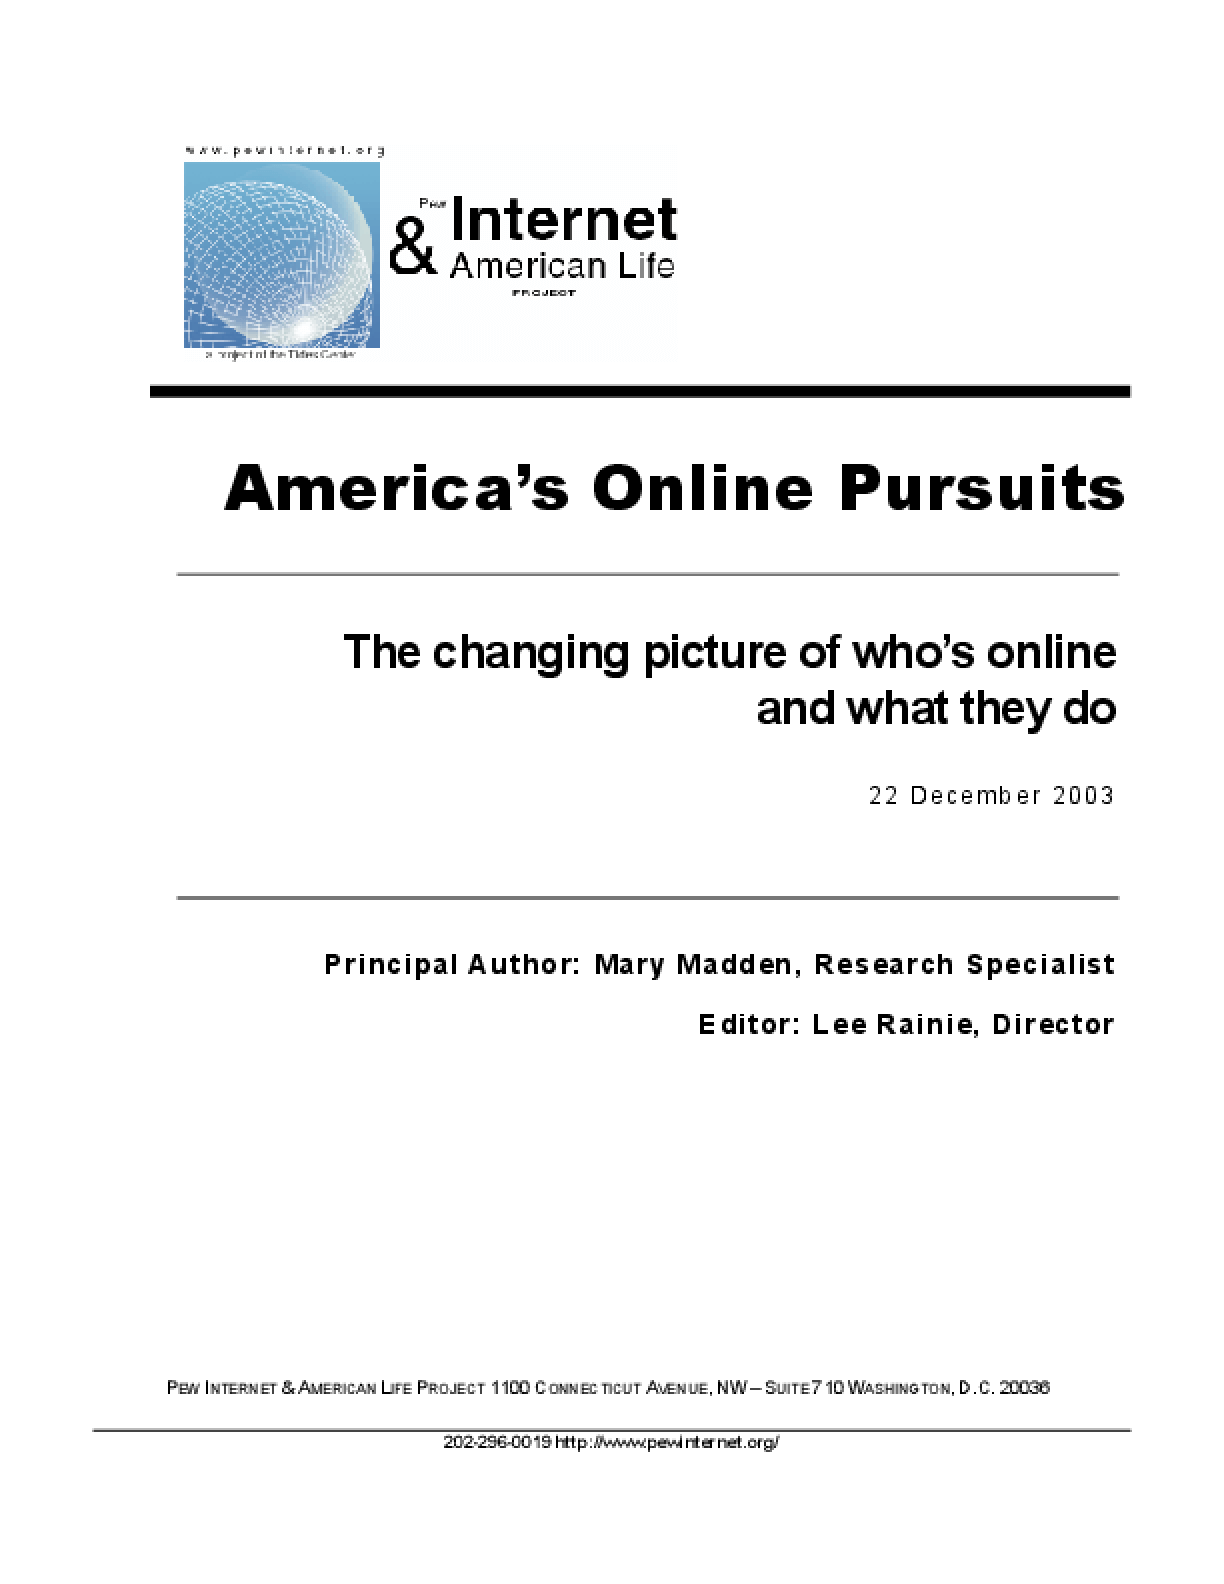 America's Online Pursuits: The Changing Picture of Who's Online and What They Do